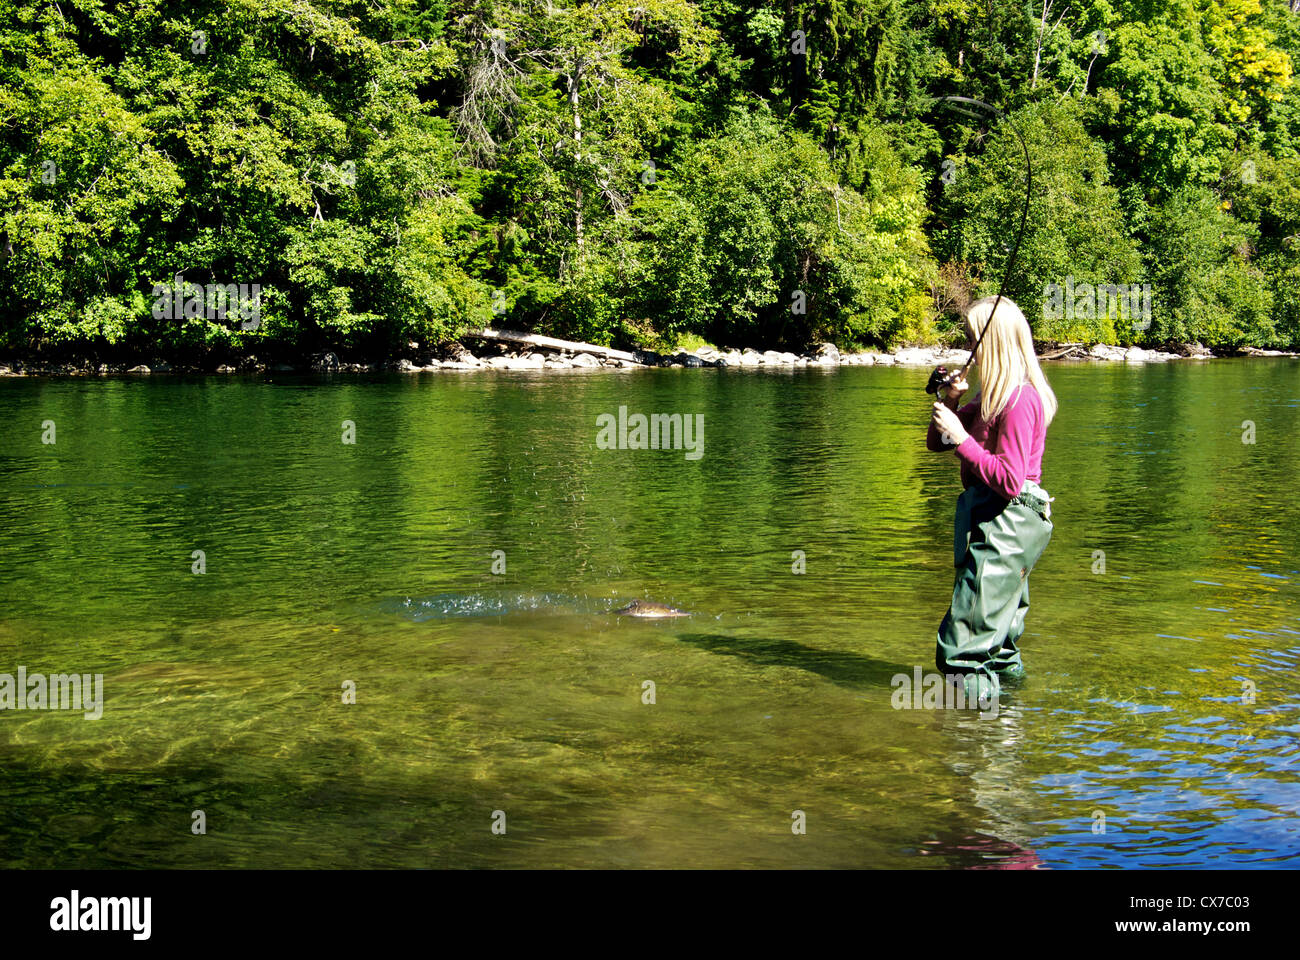 Young blond German woman catching pink salmon with spinning rod reel Campbell River BC Canada - Stock Image